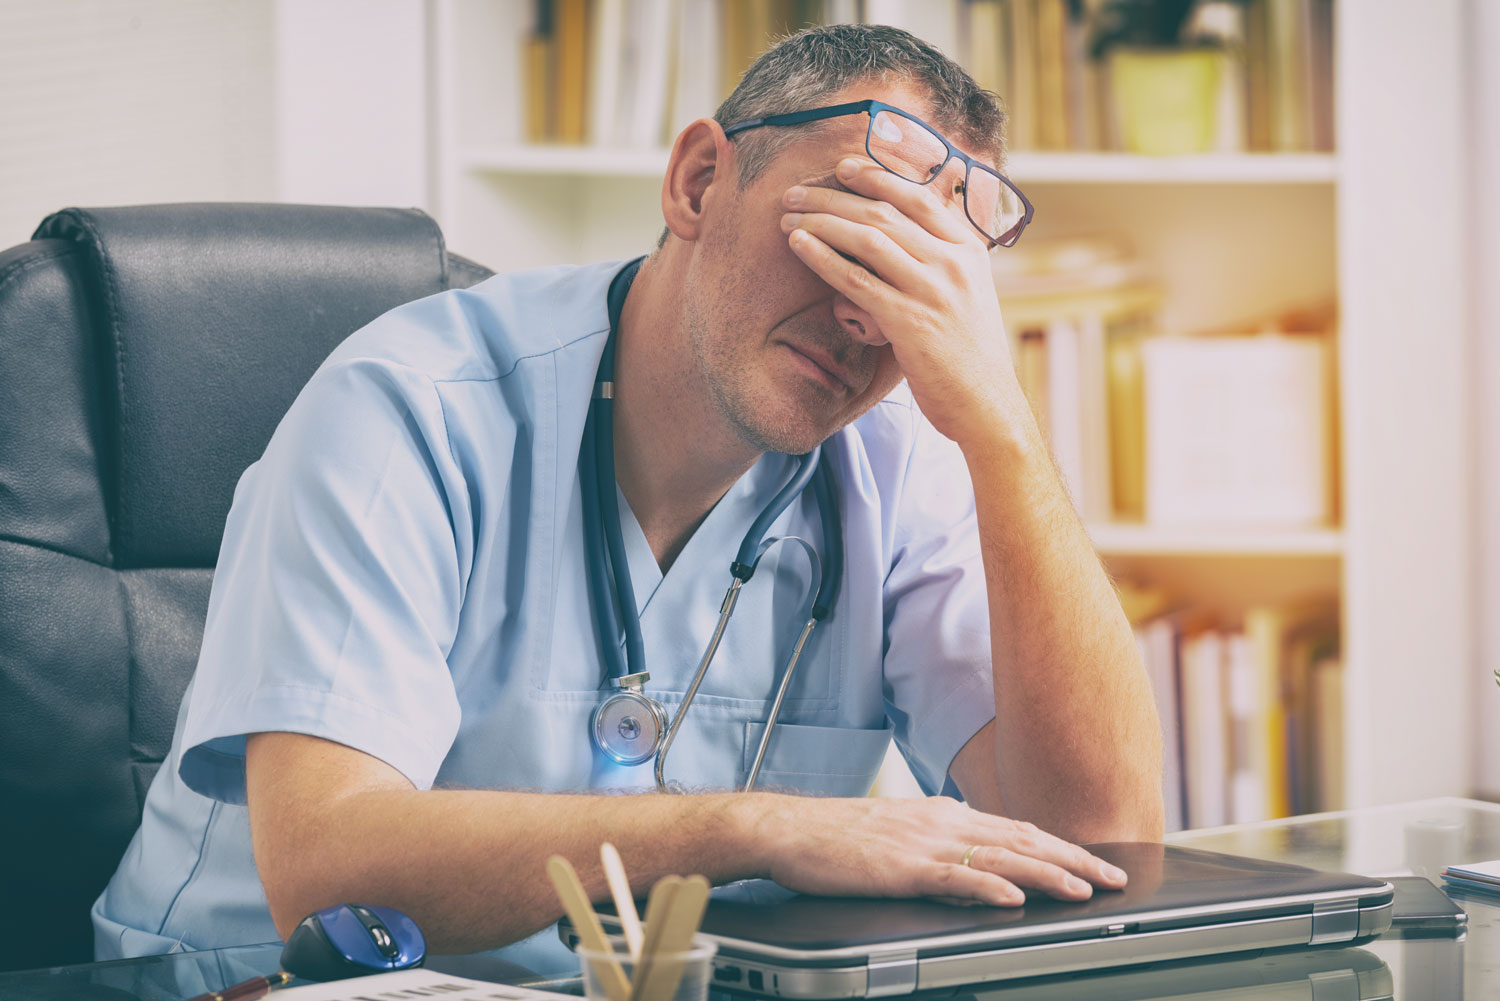 Overworked-doctor-in-his-office